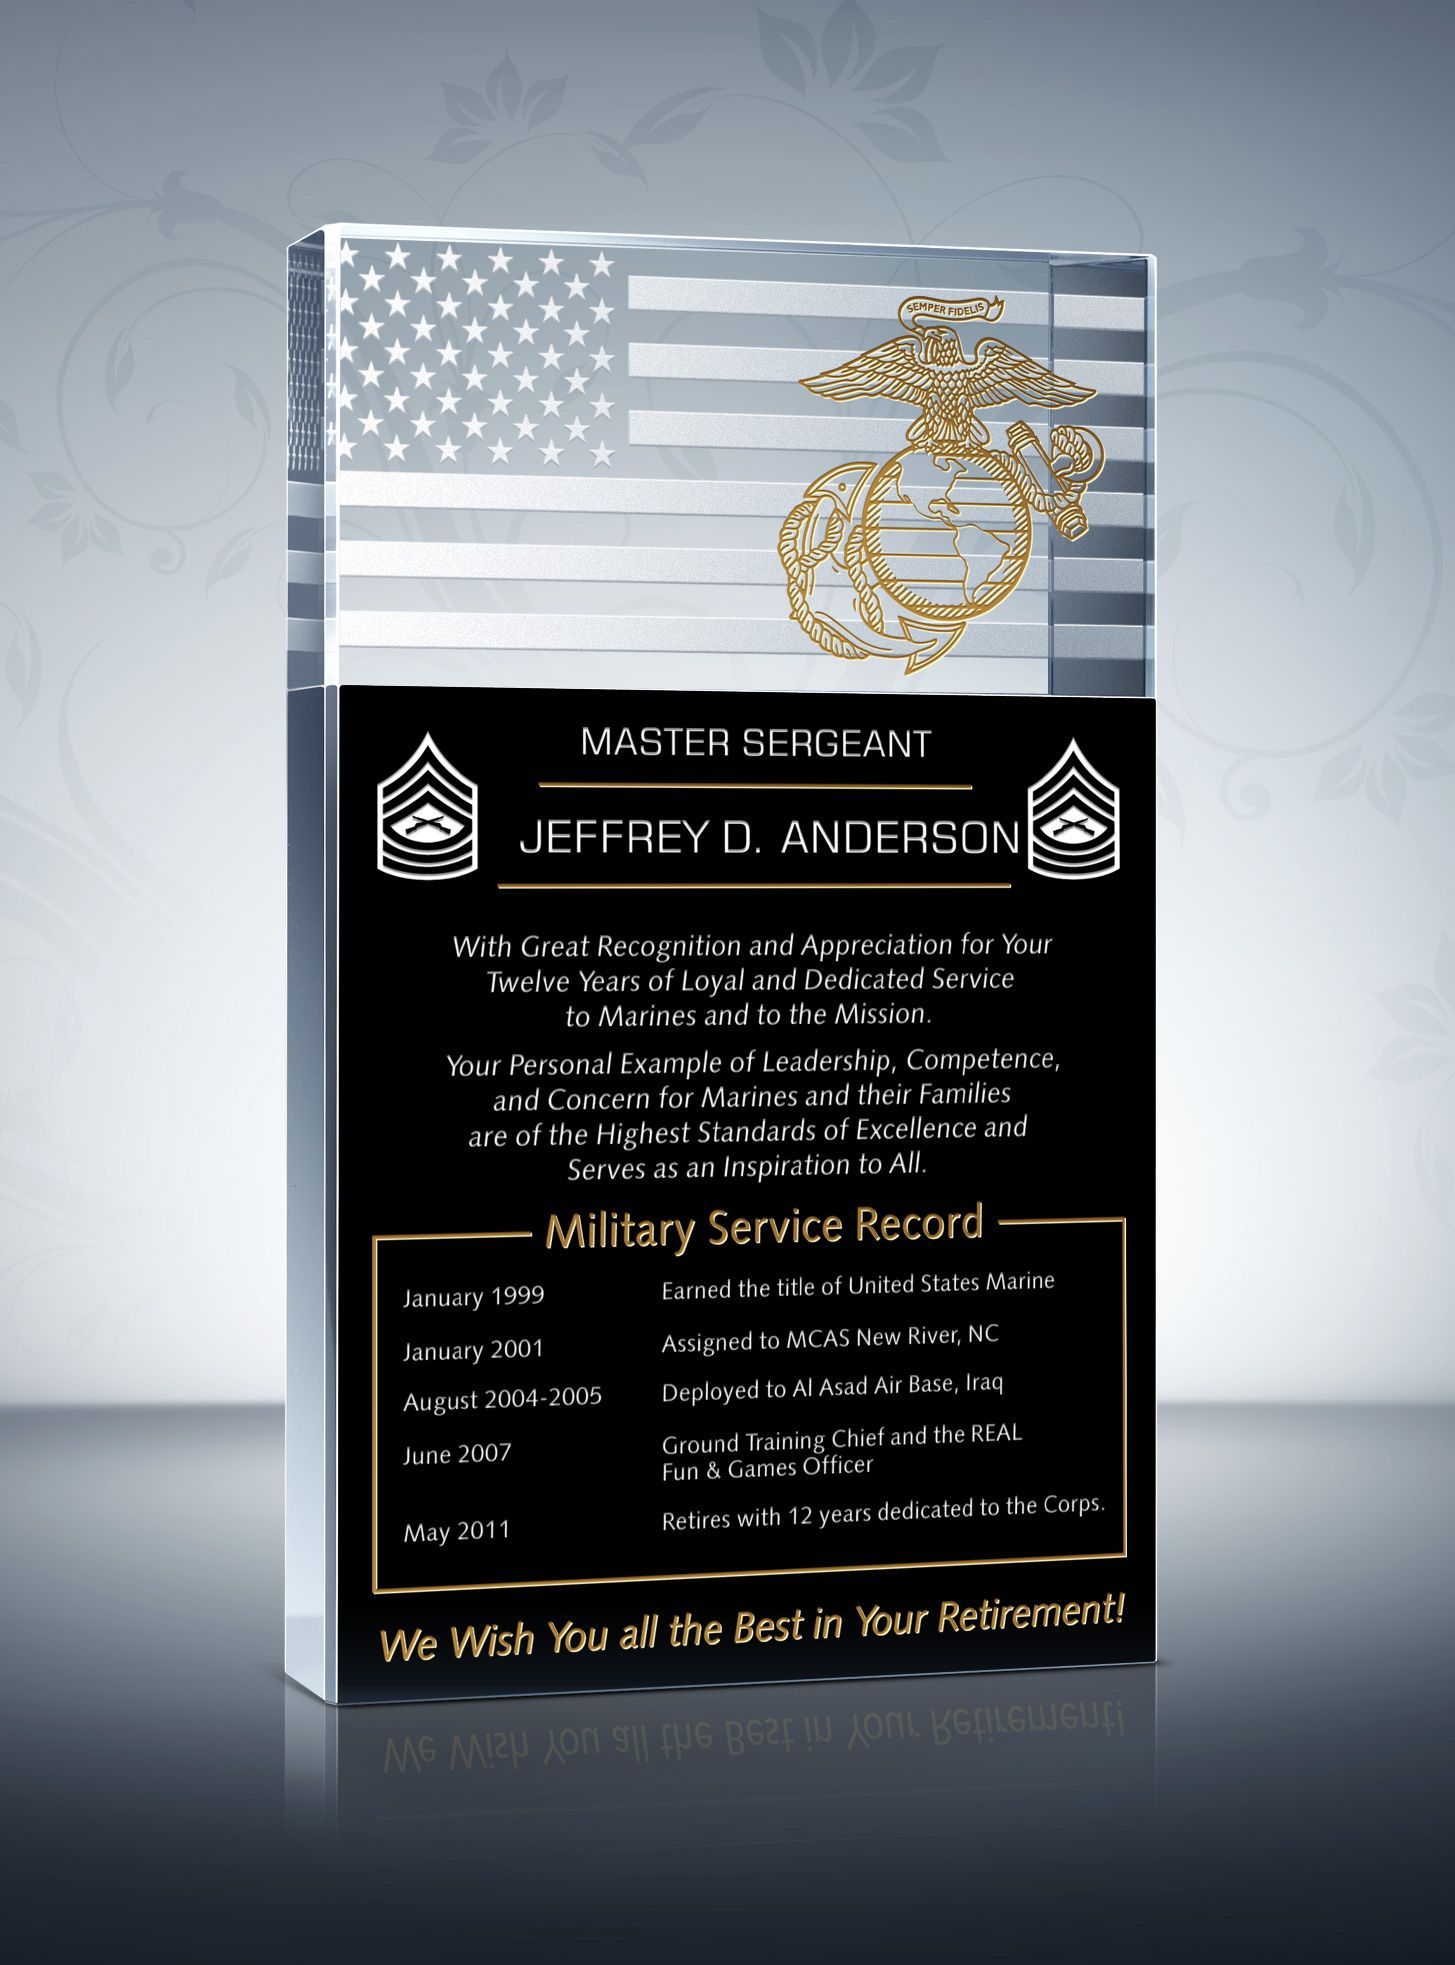 Marine corps retirement plaque and poem samples pinterest marine marine corps retirement is a special moment for any retiring marines and usmc officers the marine corps retirement ceremonies offer a unique way to thank spiritdancerdesigns Image collections